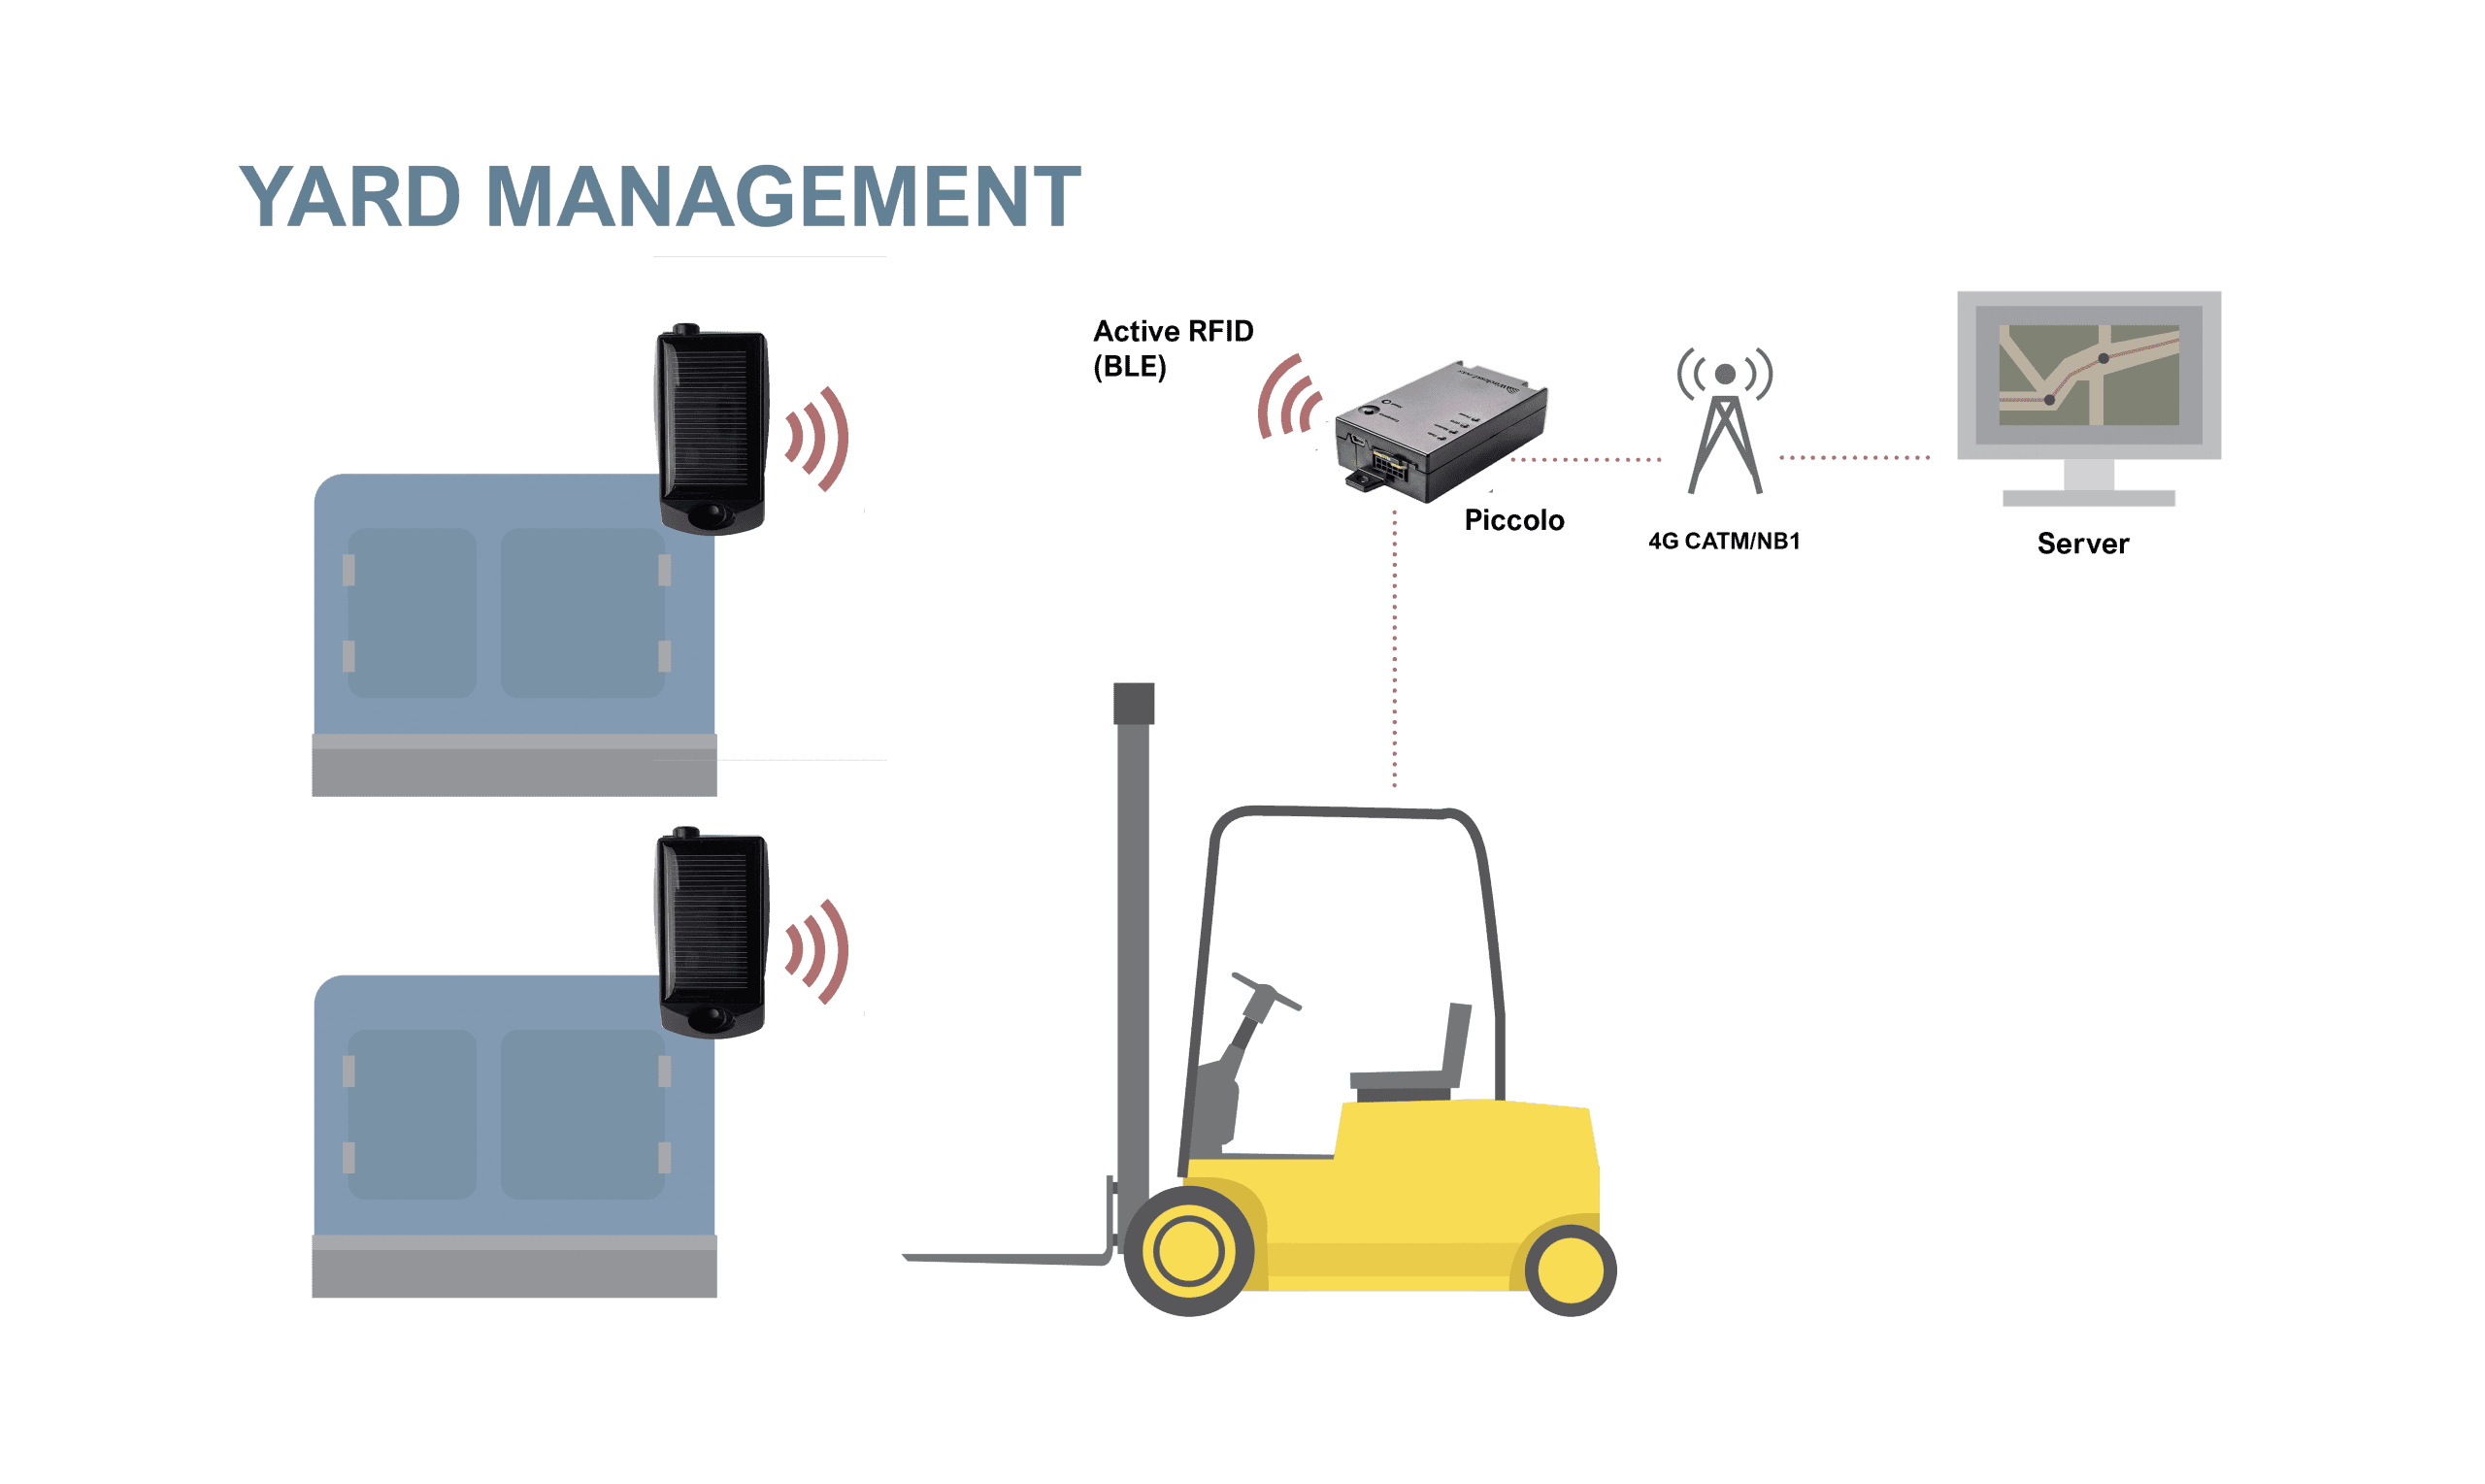 yard management with rfid tags